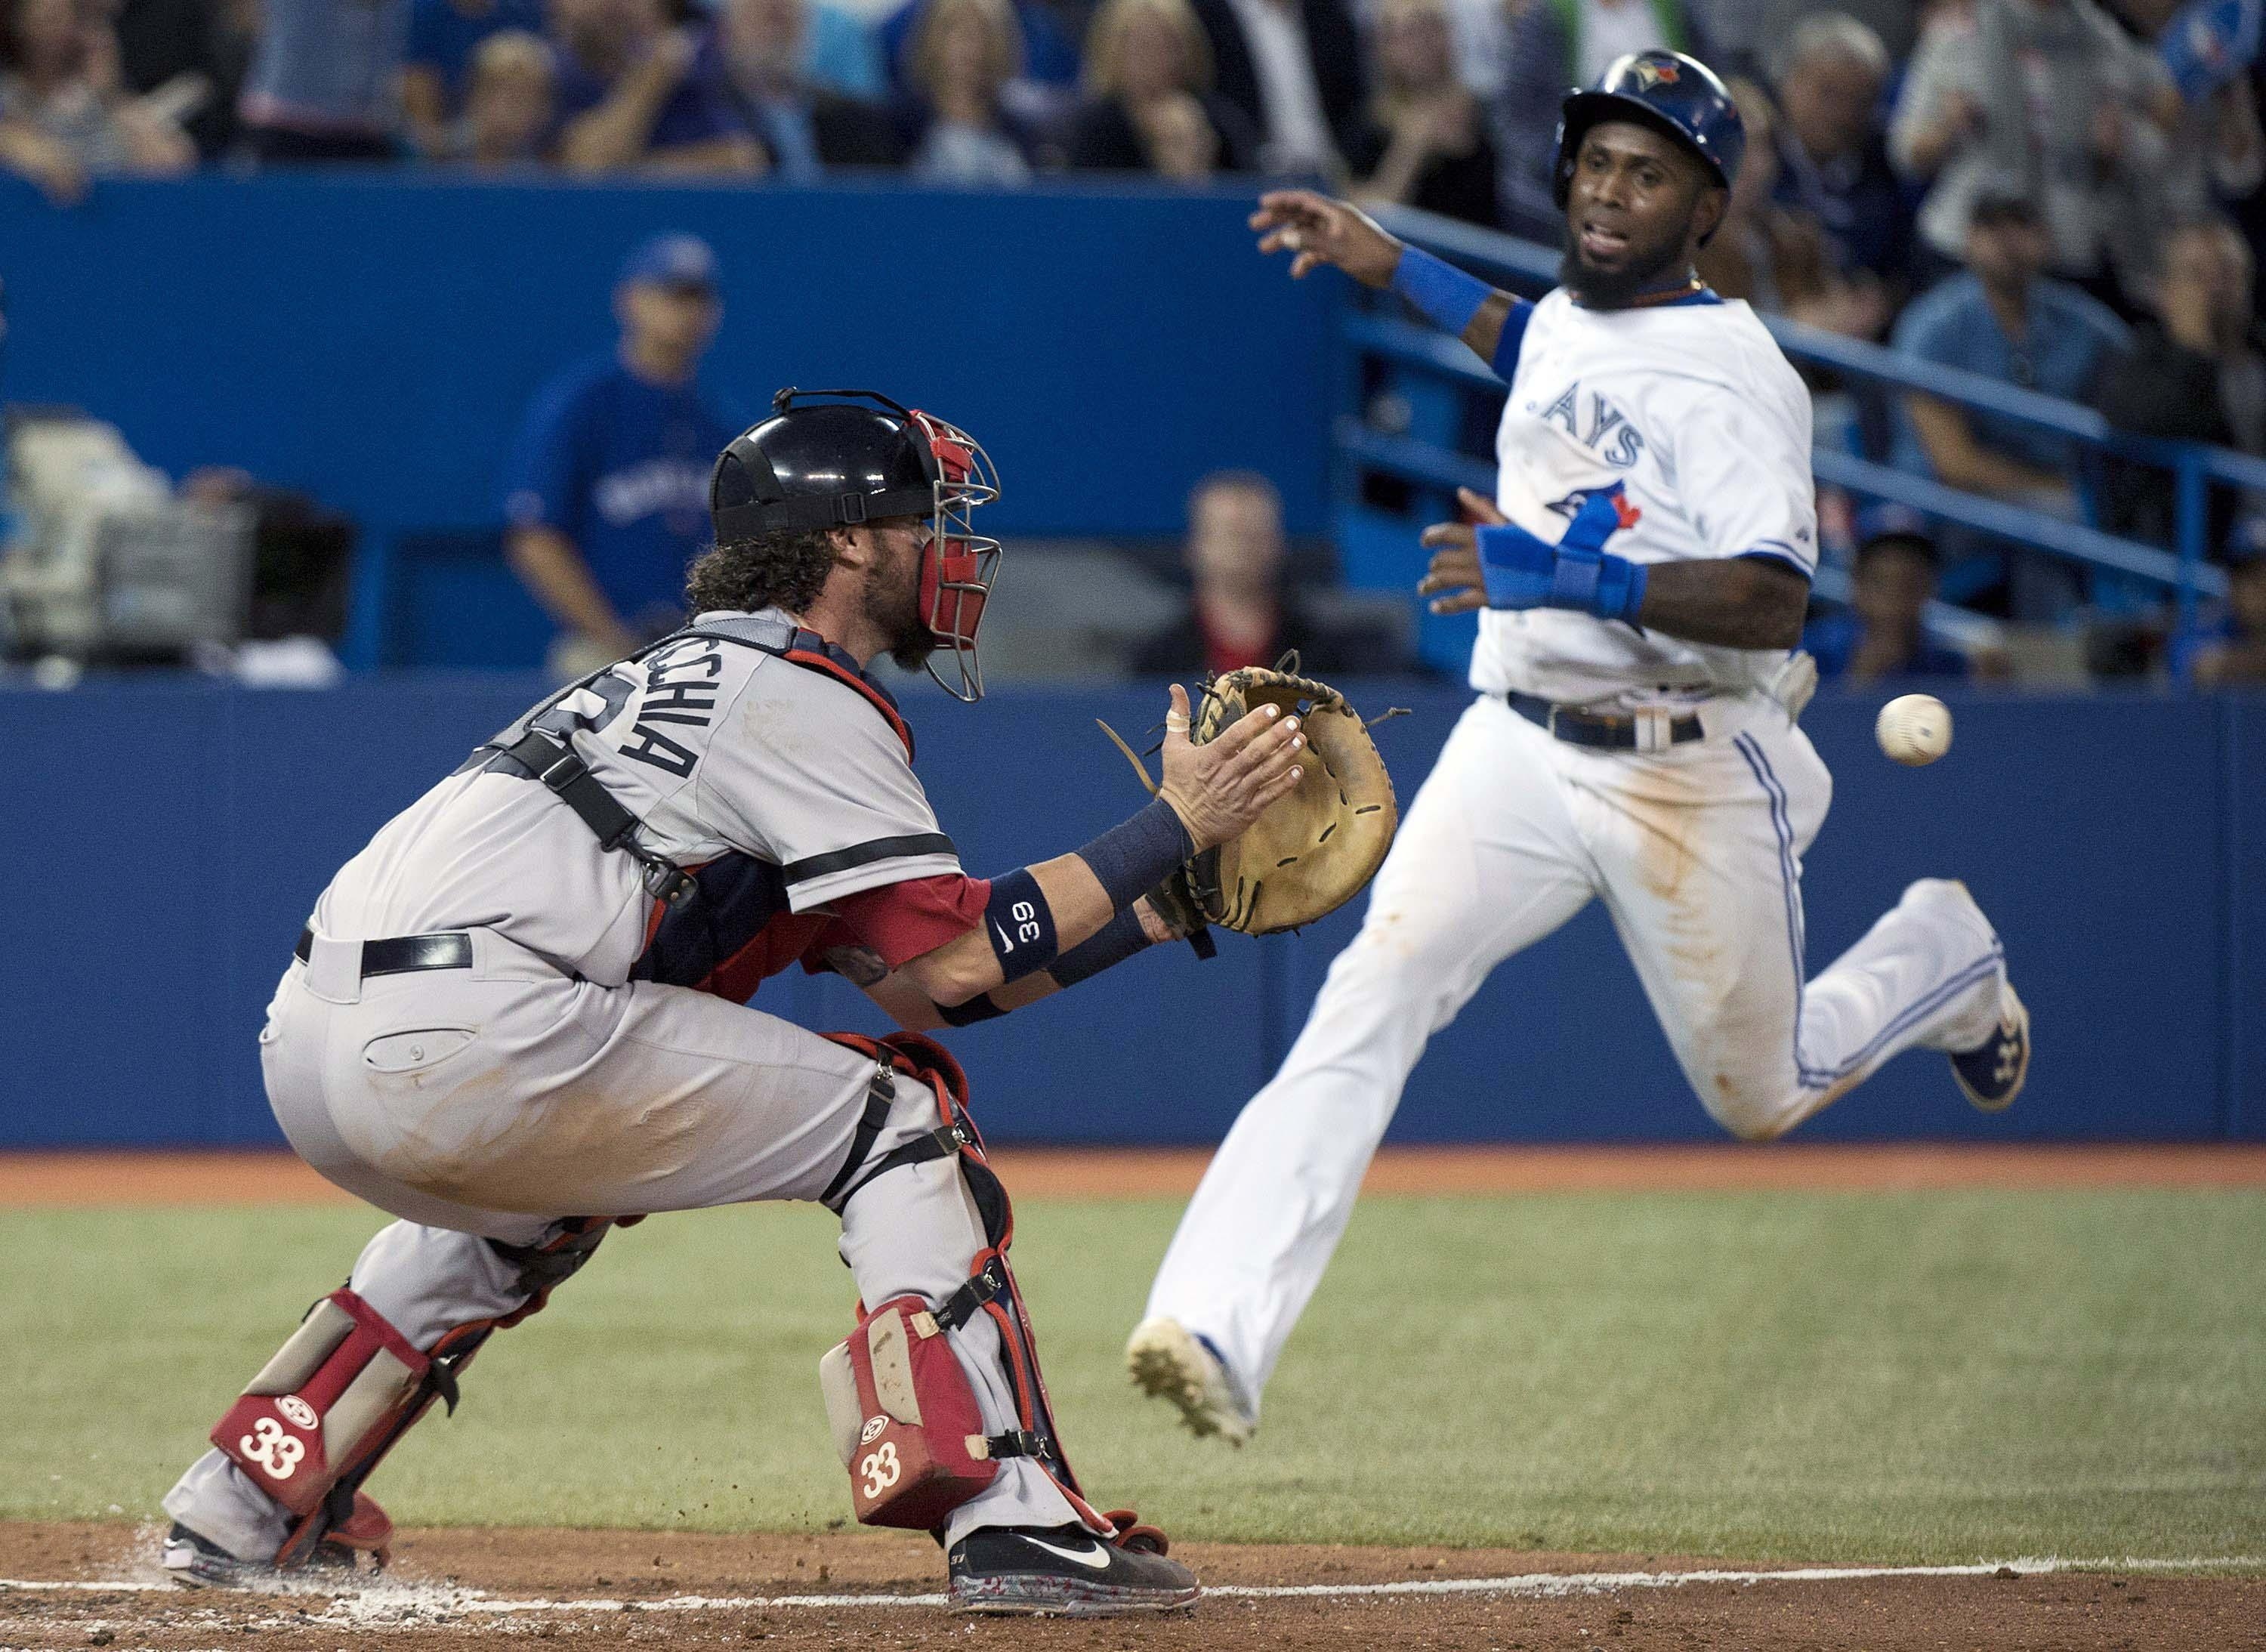 The player development agreement between the Toronto Blue Jays and the Buffalo Bisons has been popular with both teams.